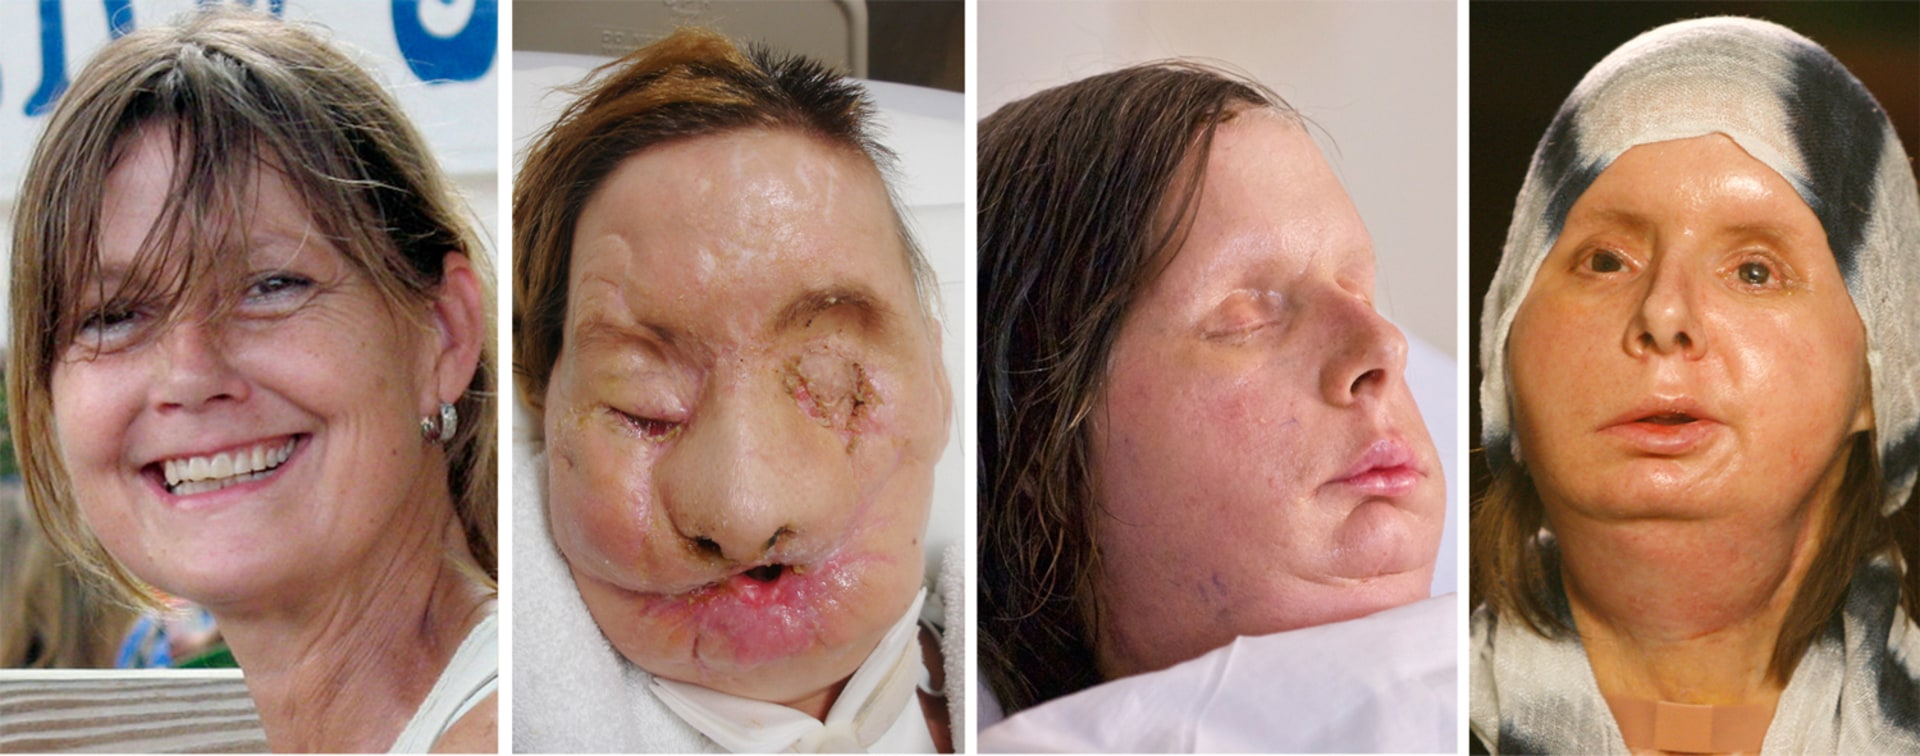 Charla Nash seeks primate safety act after chimp attack ...